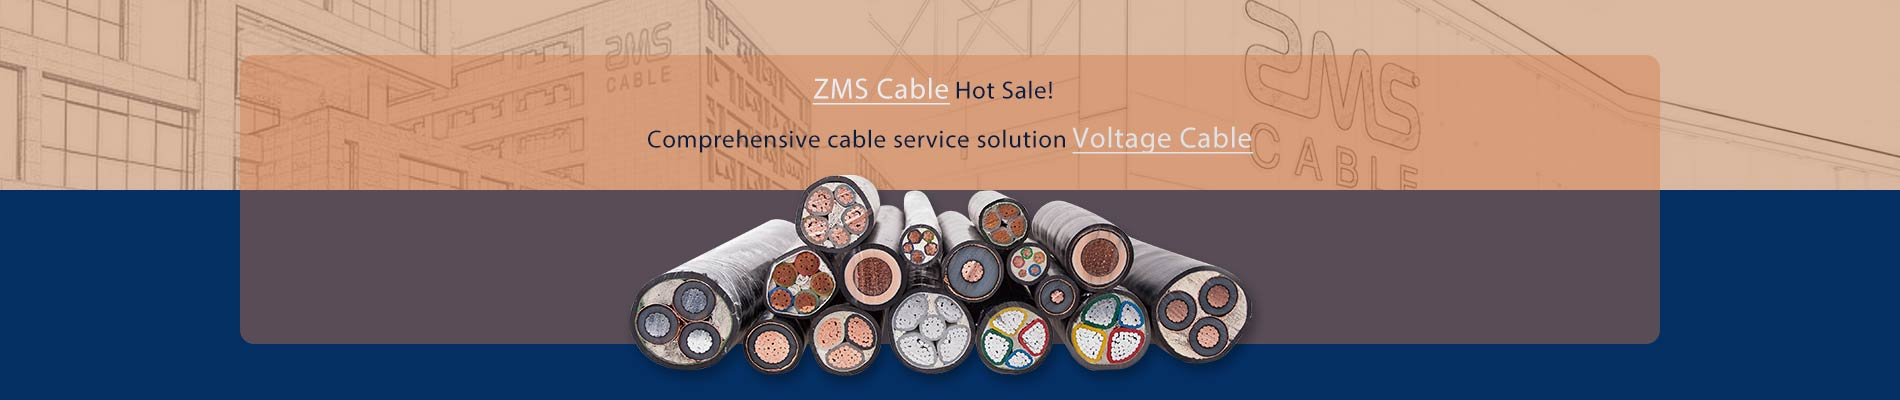 Cable-ZMS-wire-and-cable-supplier